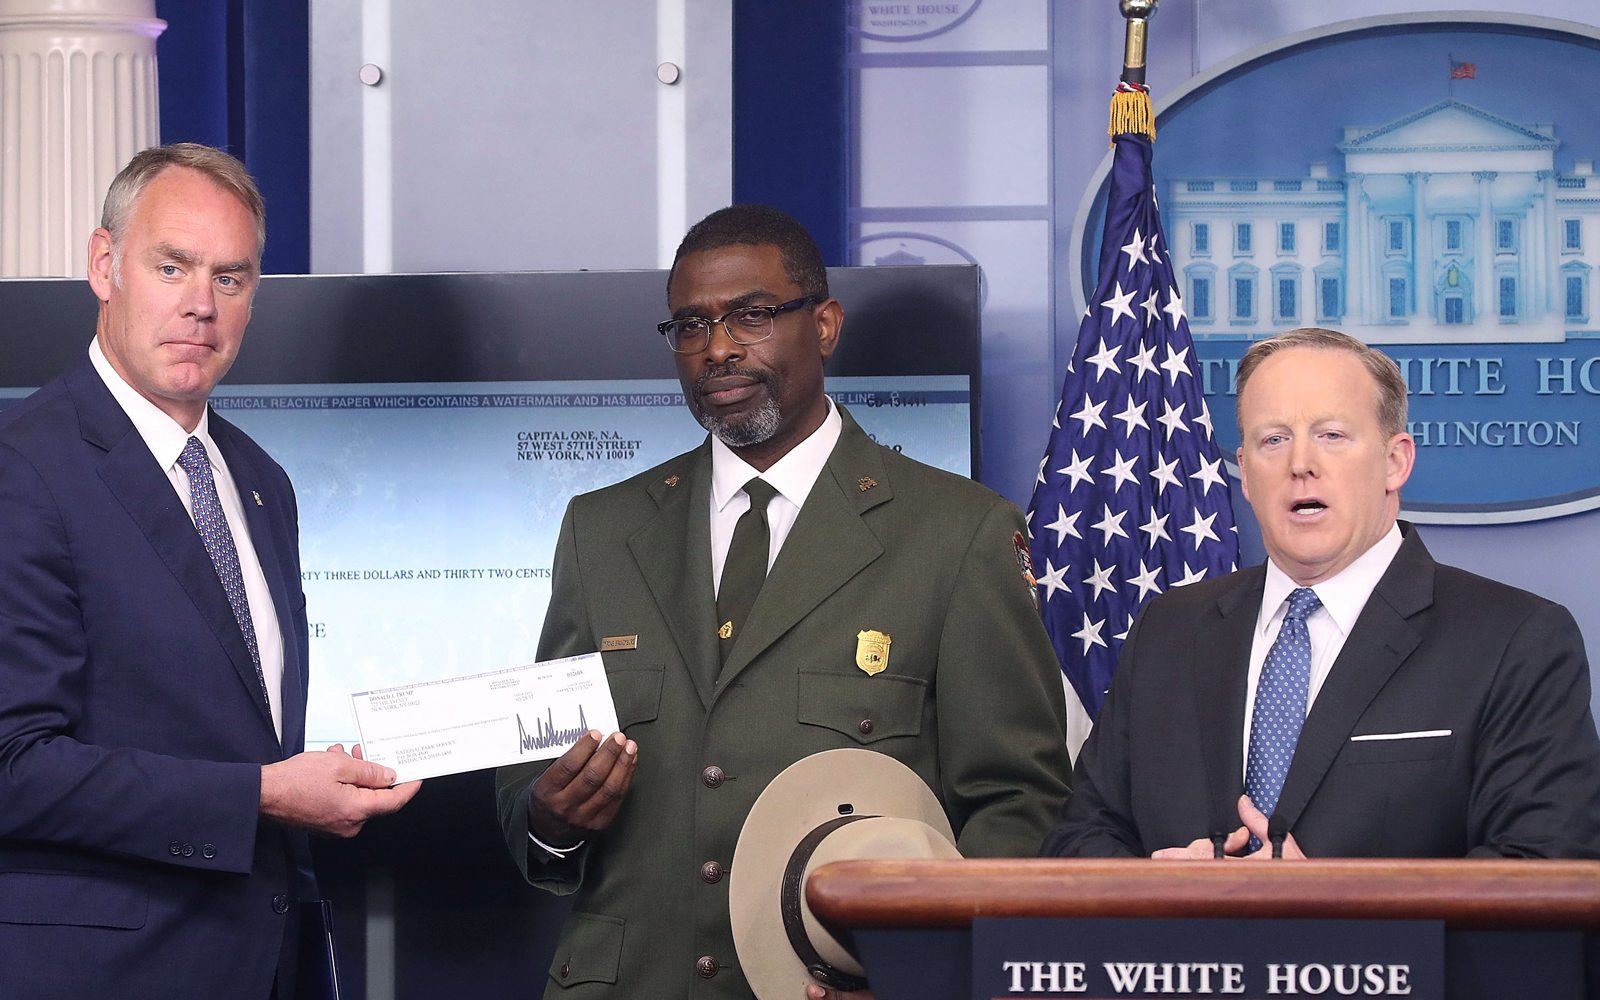 President Trump Donated $78K From His Salary to the National Parks, but He Wants to Cut the Department That Funds It by $2 Billion